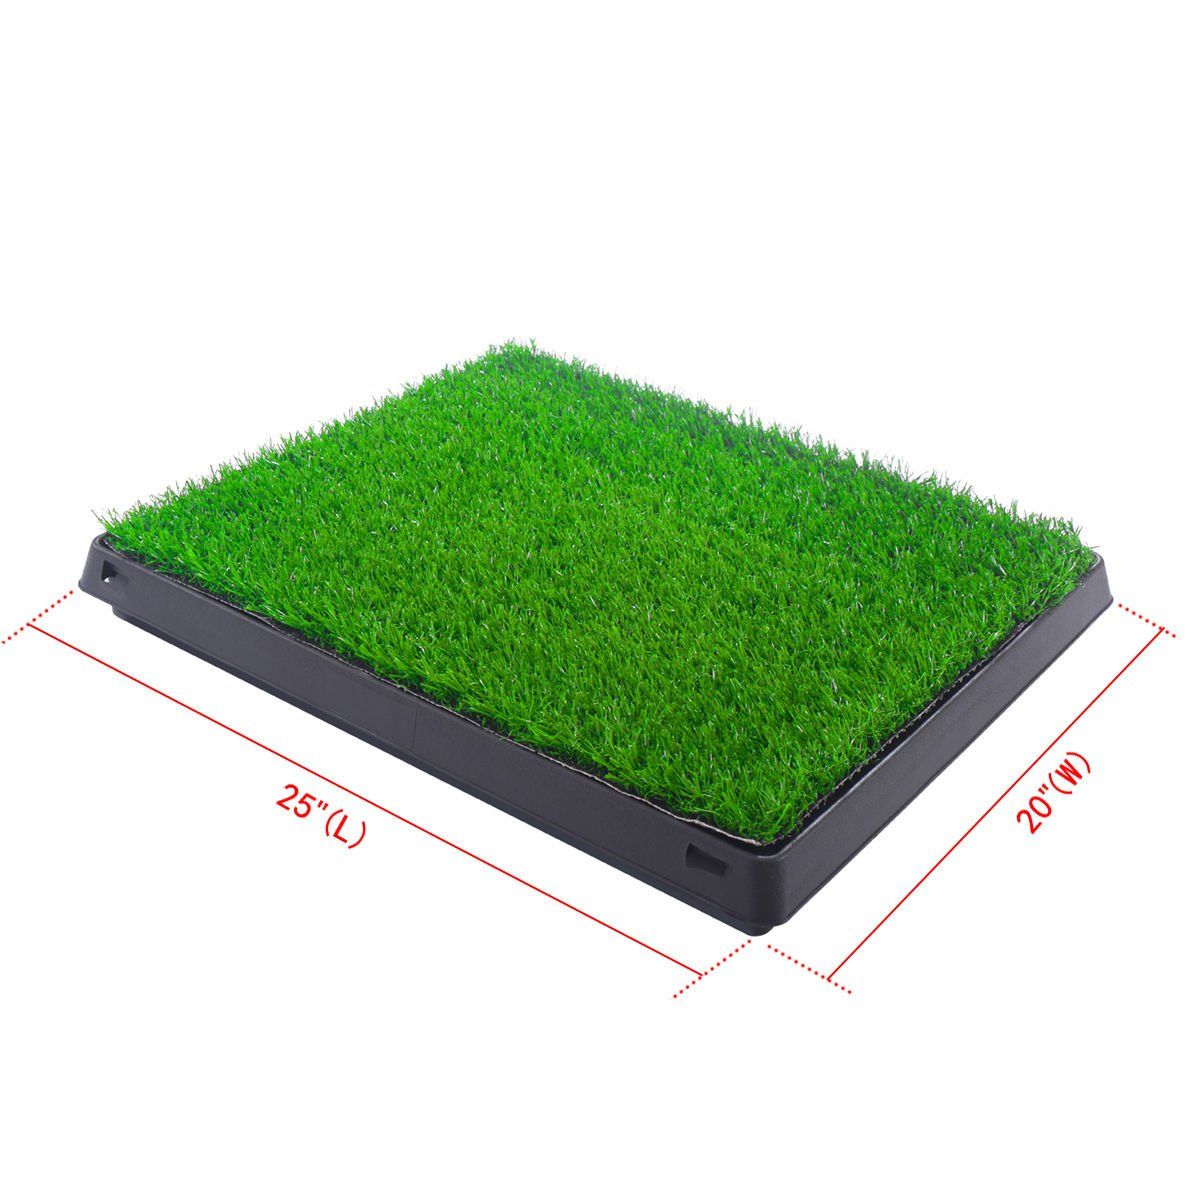 Training Pads Indoor Puppy forage training sniffer Pet Potty Training Indoor Pad Mat Turf Patch Green